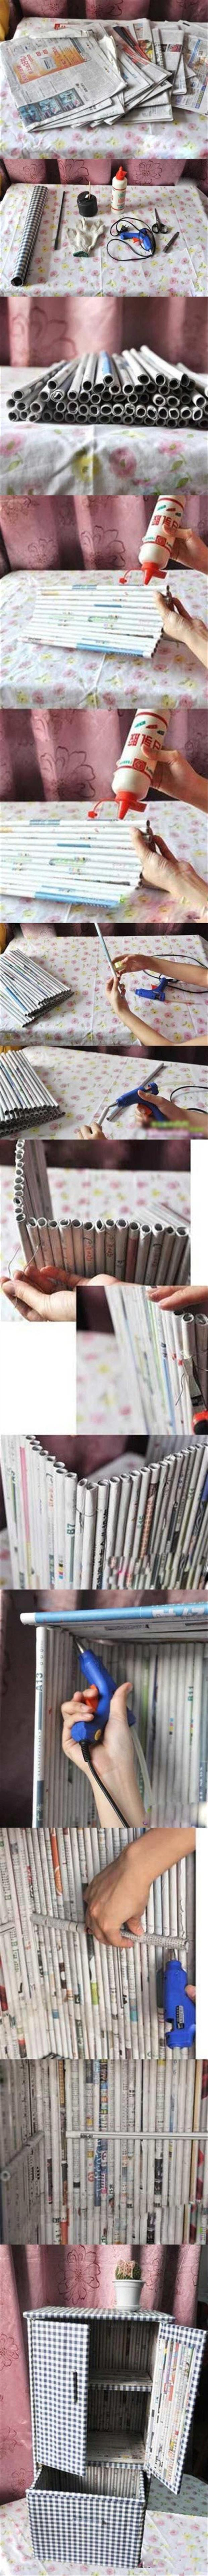 do it yourself crafts (11)